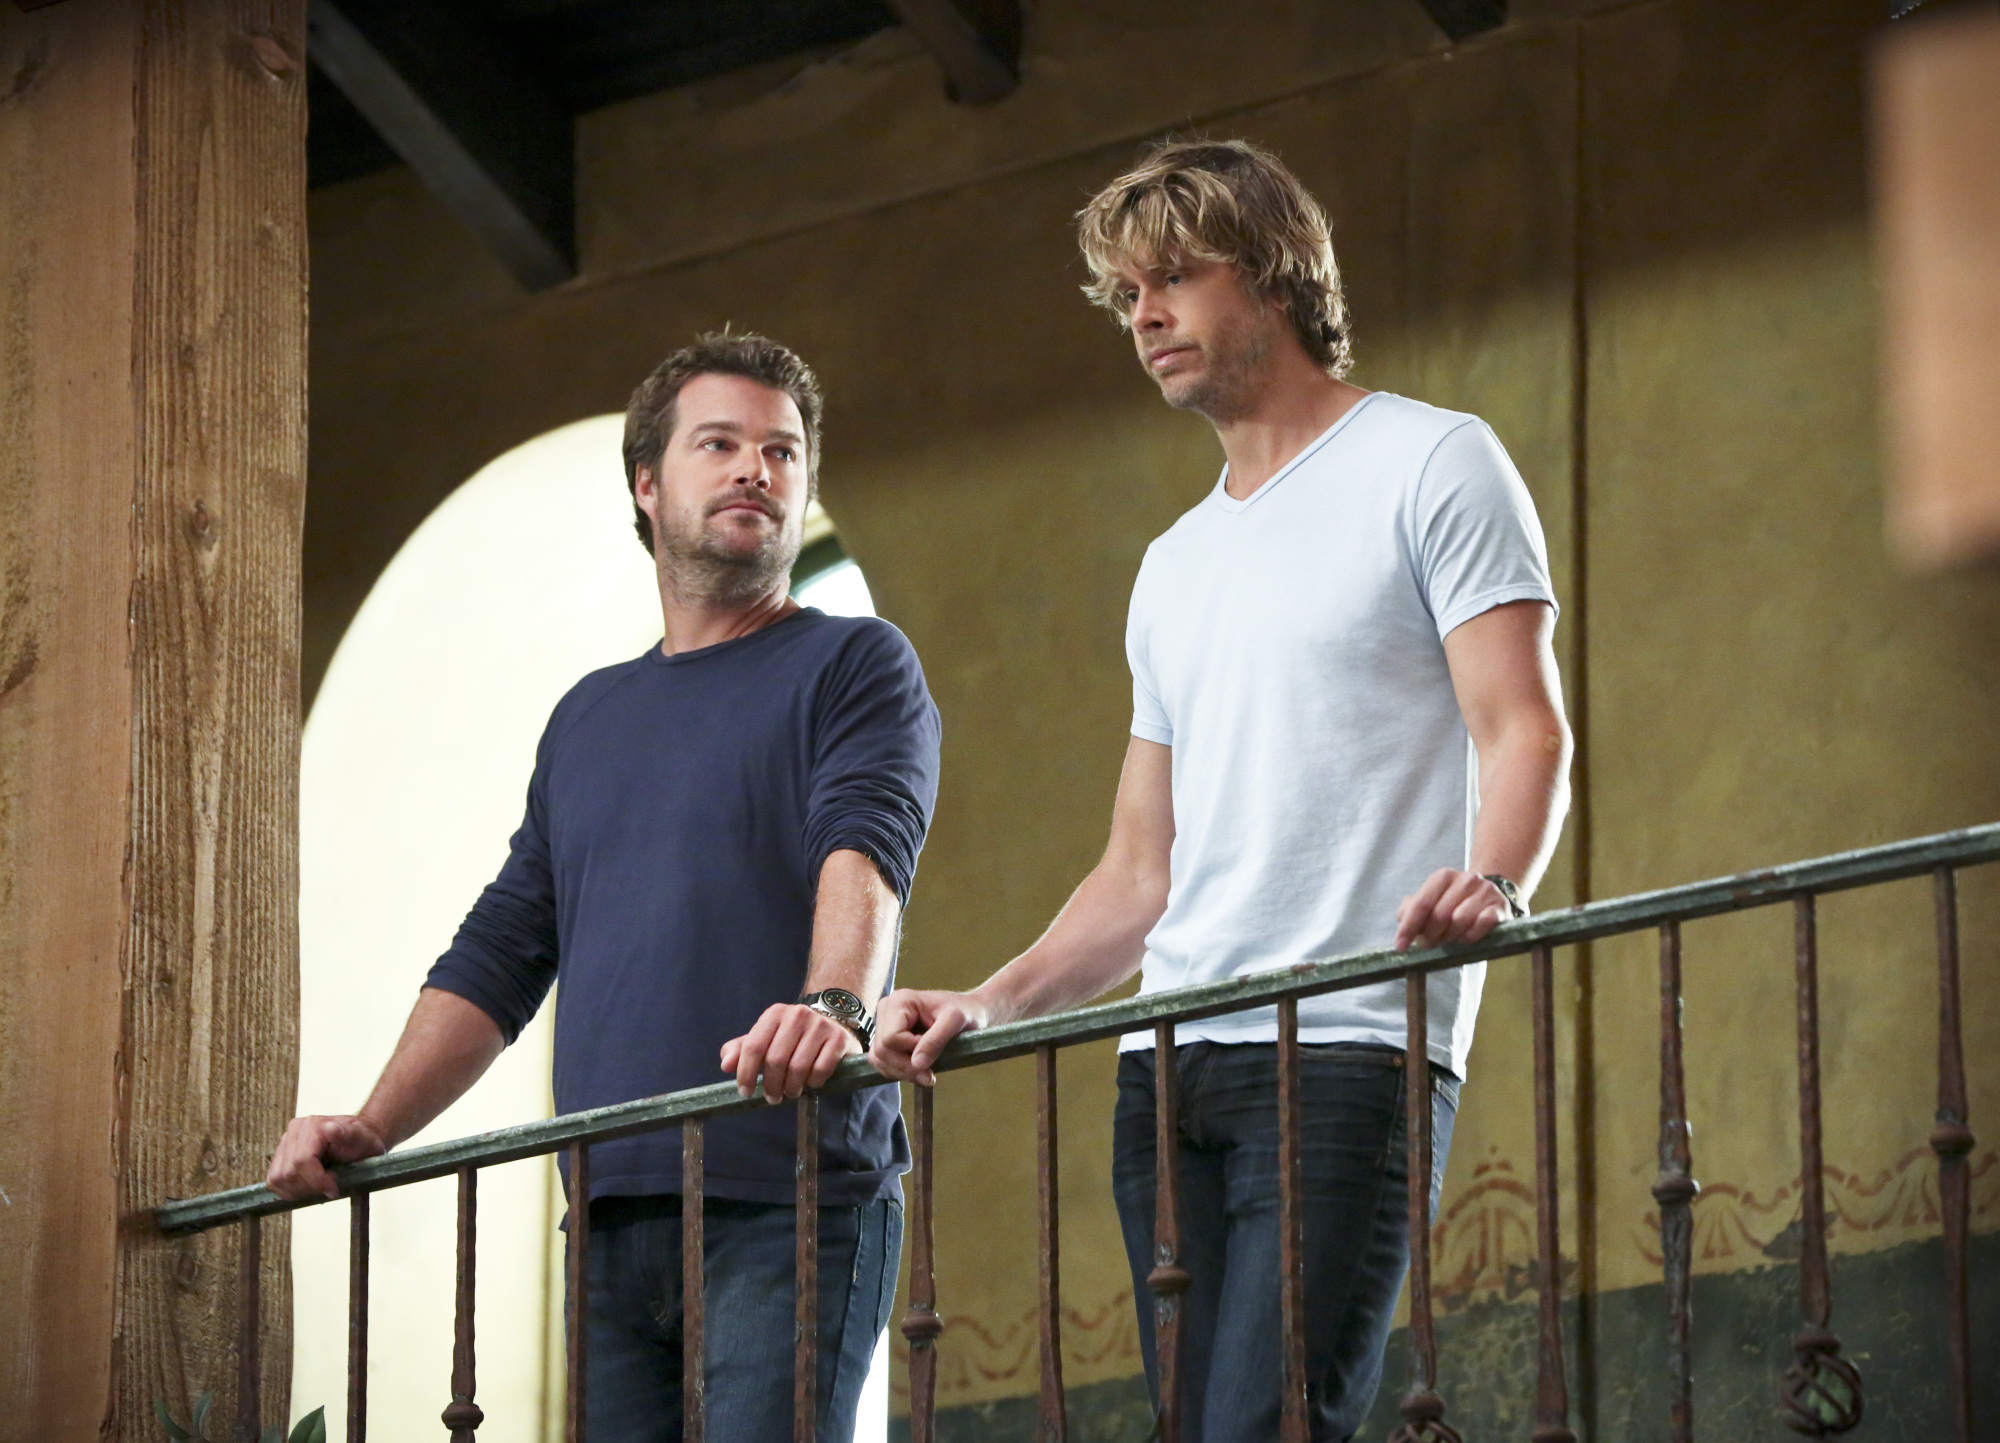 Chris O'Donnell as Special Agent G. Callen and Eric Christian Olsen as LAPD Liaison Marty Deeks.